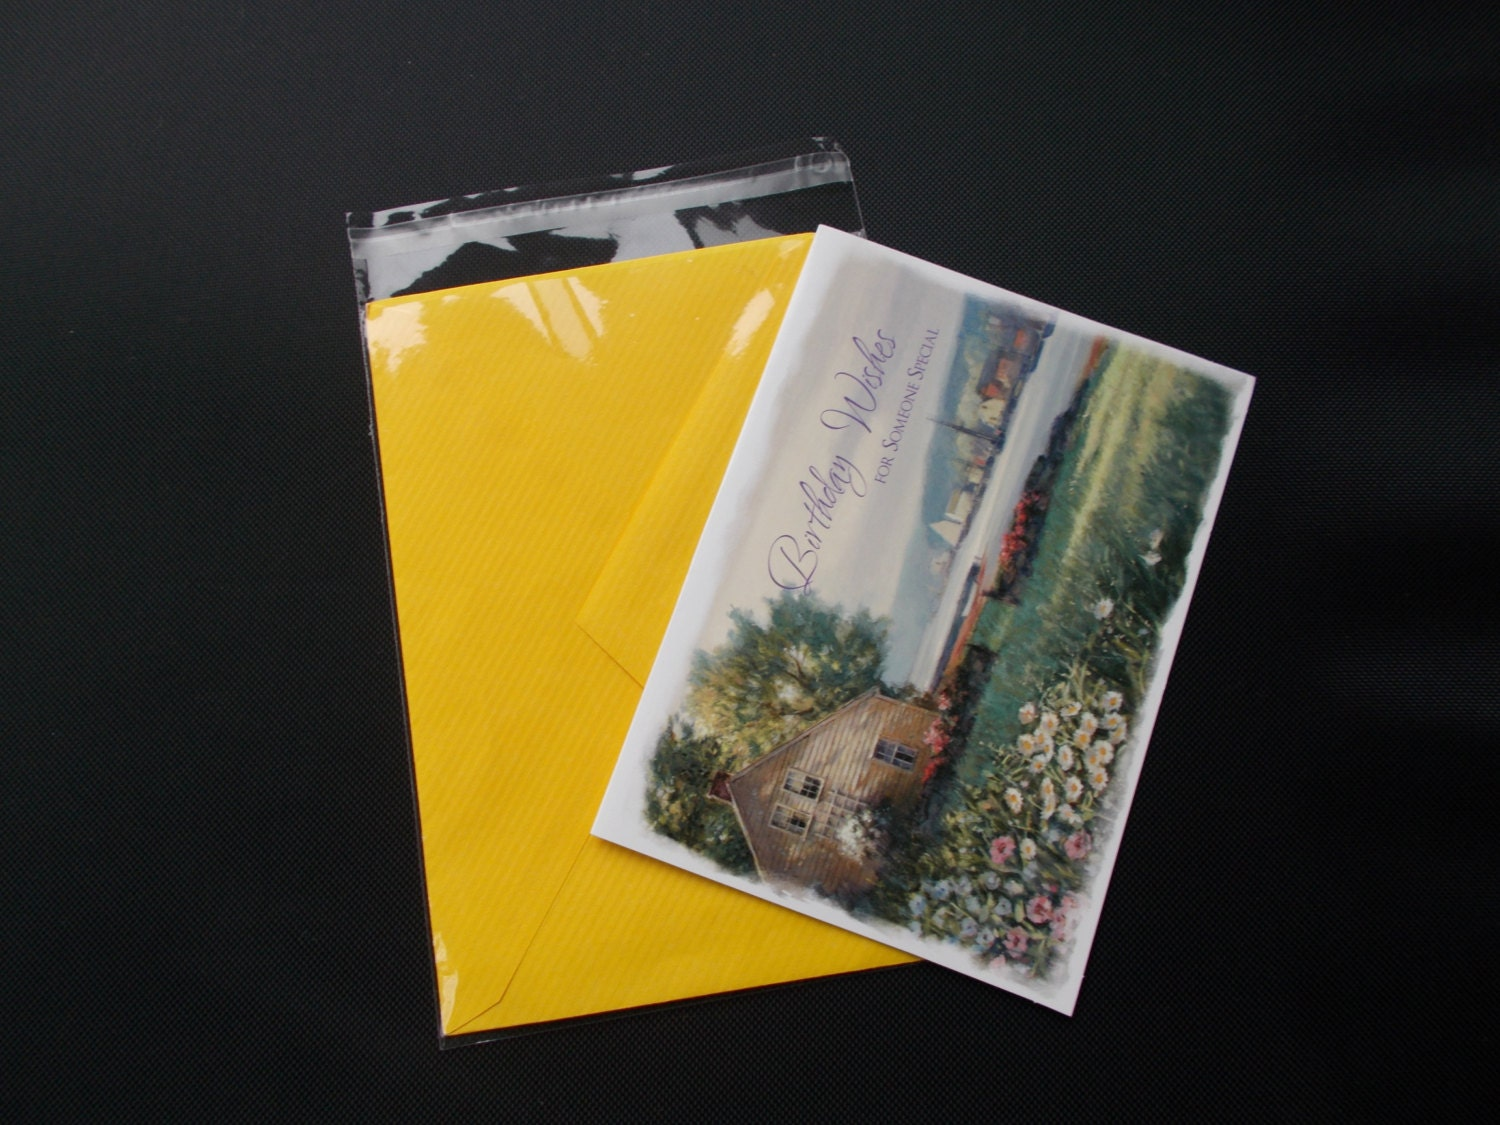 200 A7 5 716 X 7 14 Clear Resealable Etsy